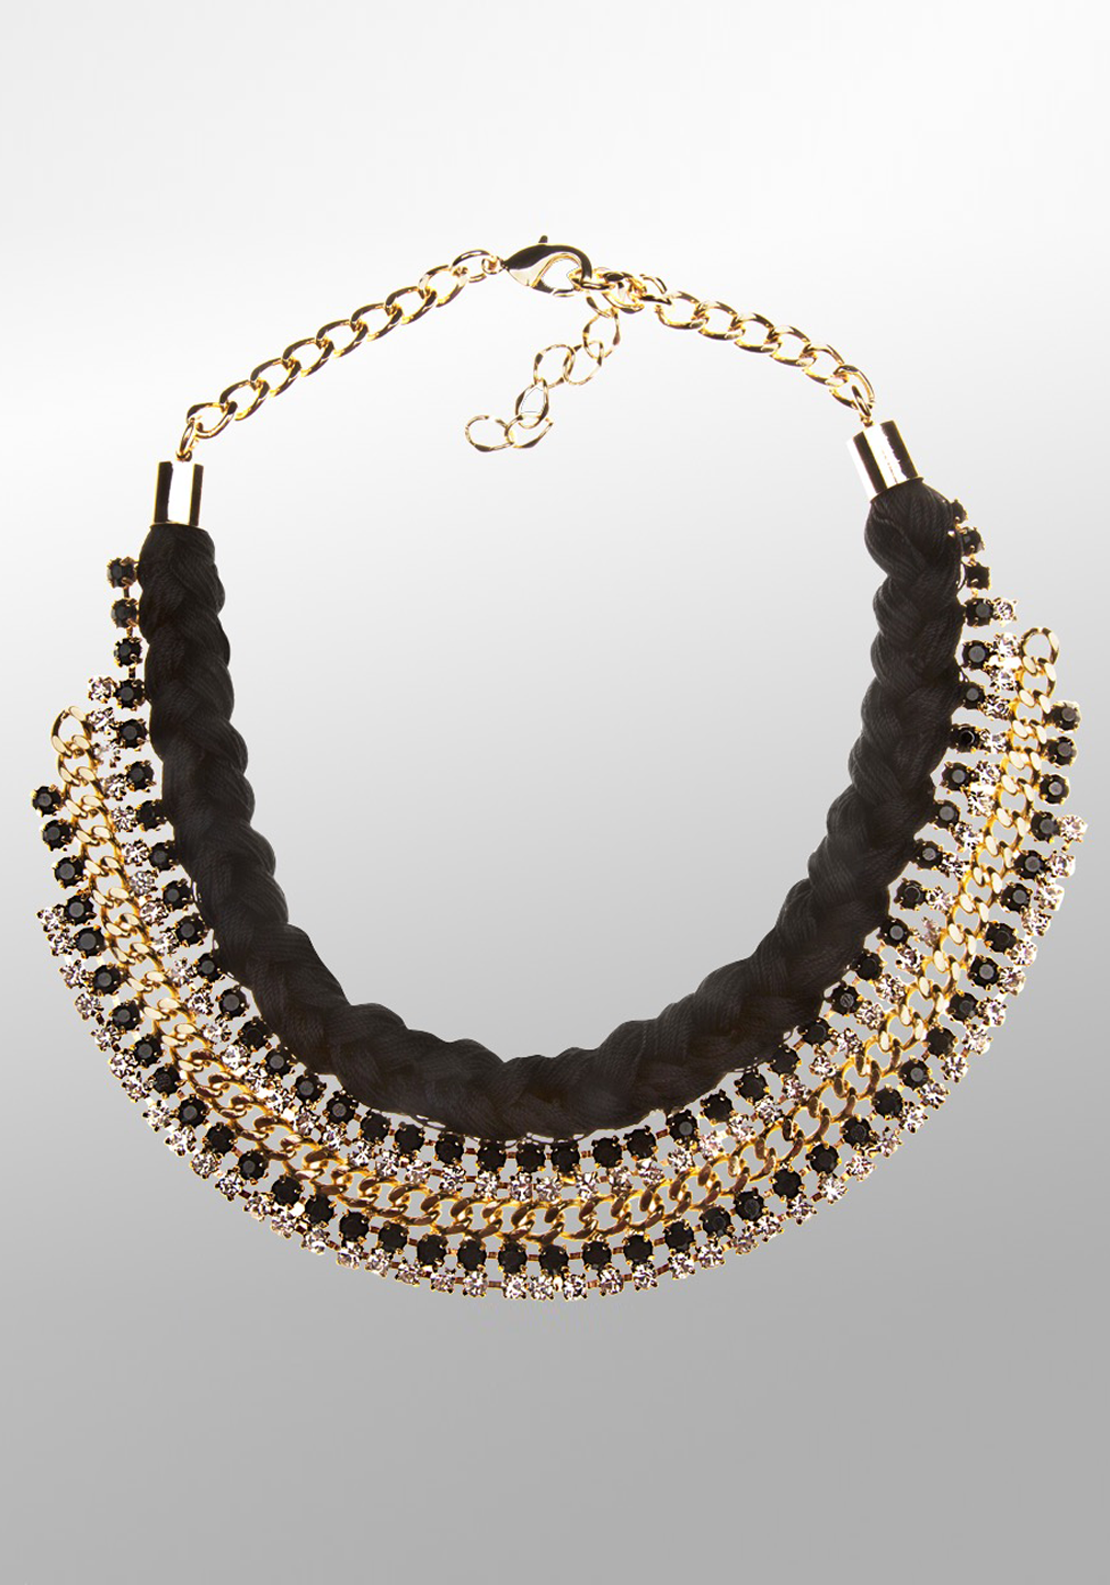 Newbridge eShe Weave Necklace with Black & Clear Stone Setting, Black